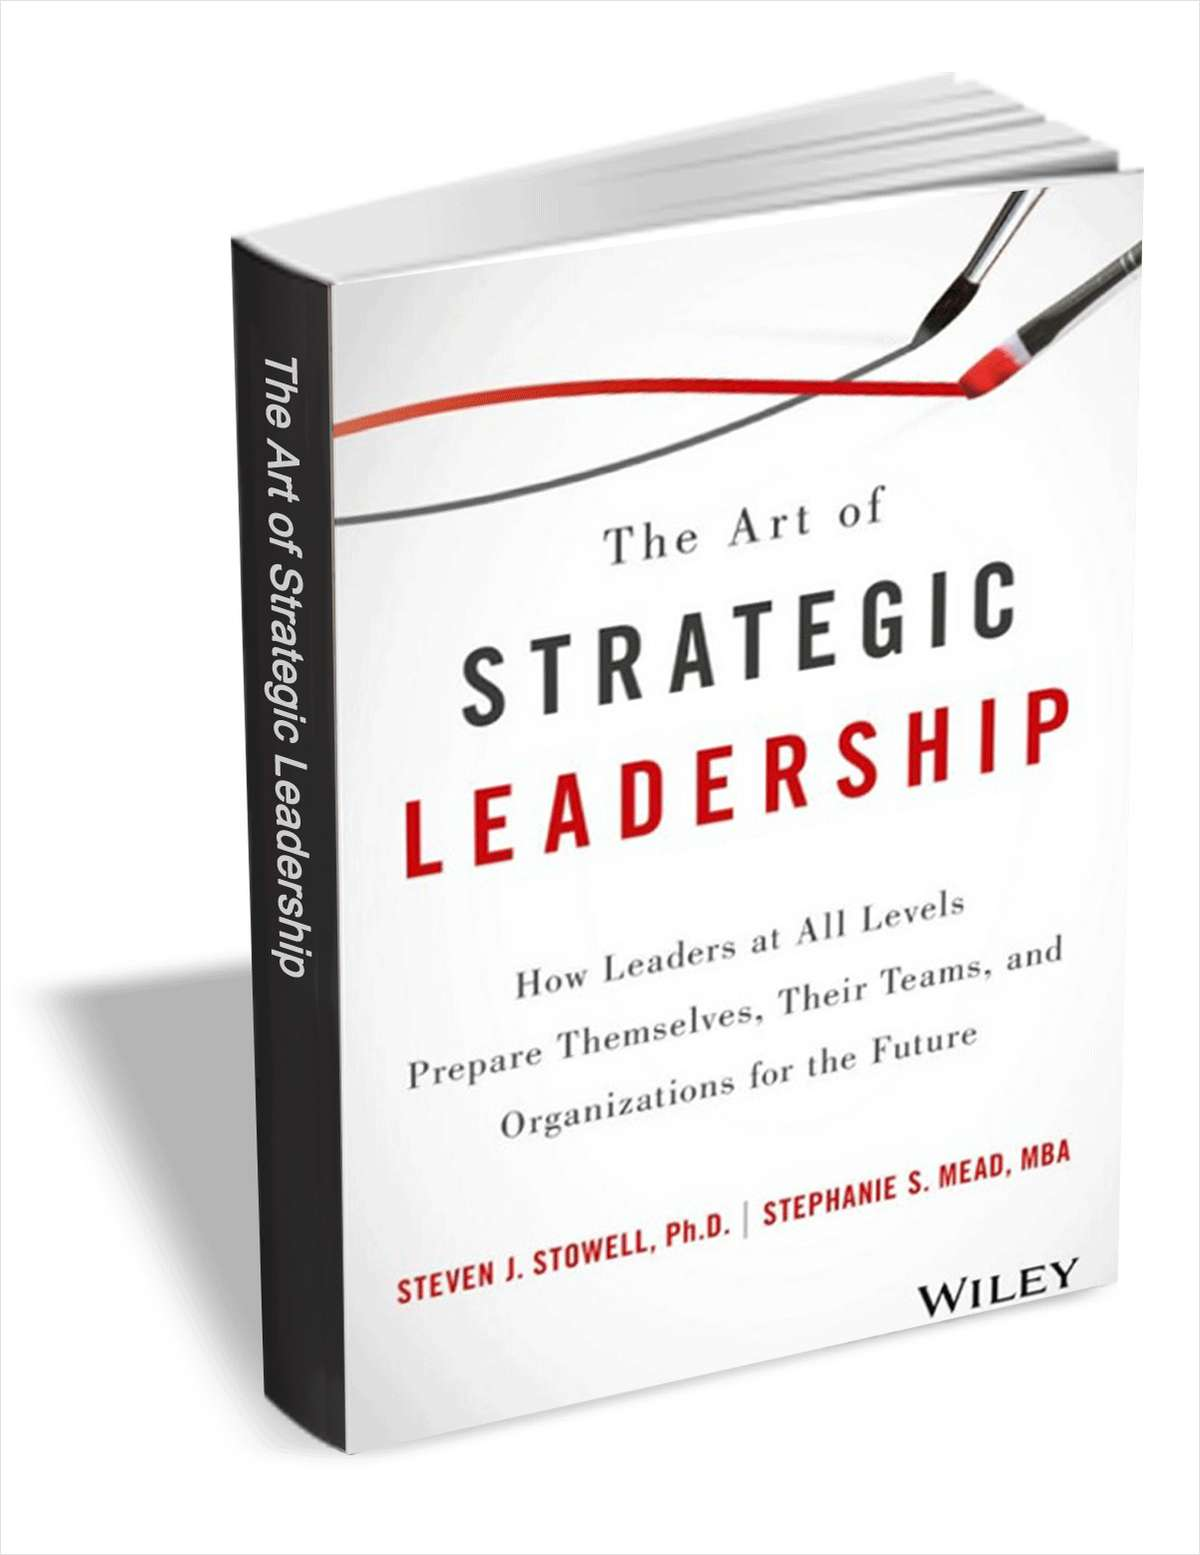 The Art of Strategic Leadership ($15 Value) FREE For a Limited Time